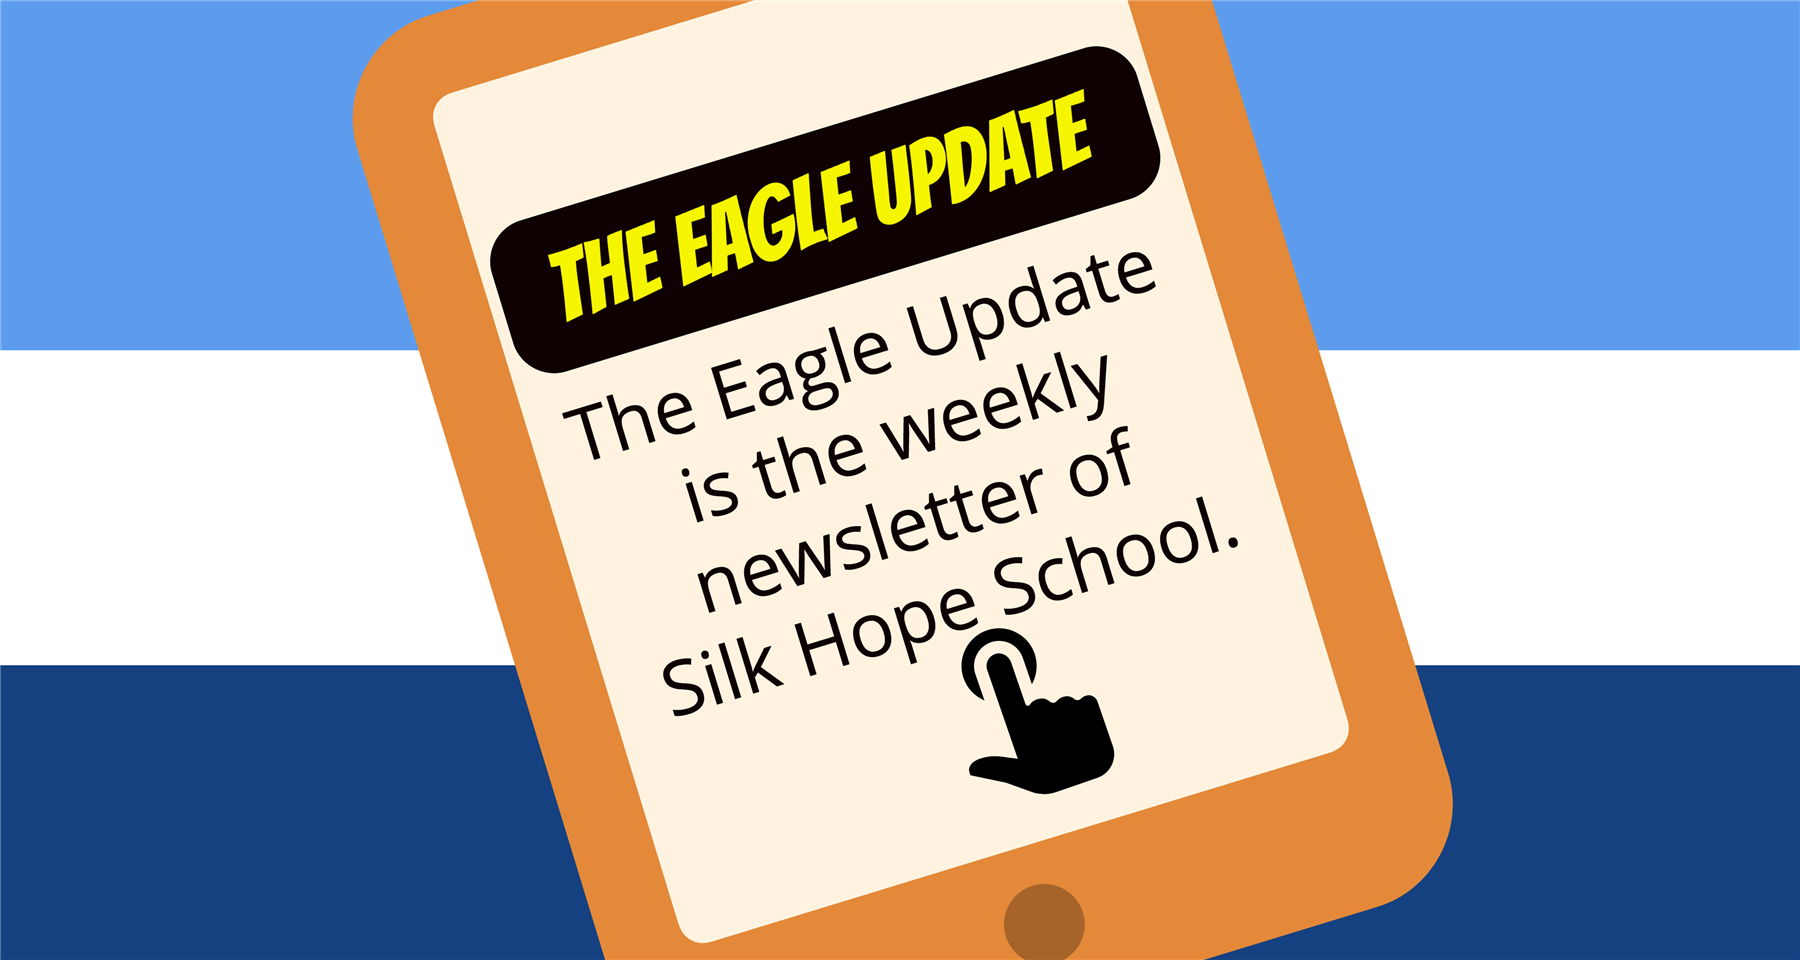 The Eagle Update